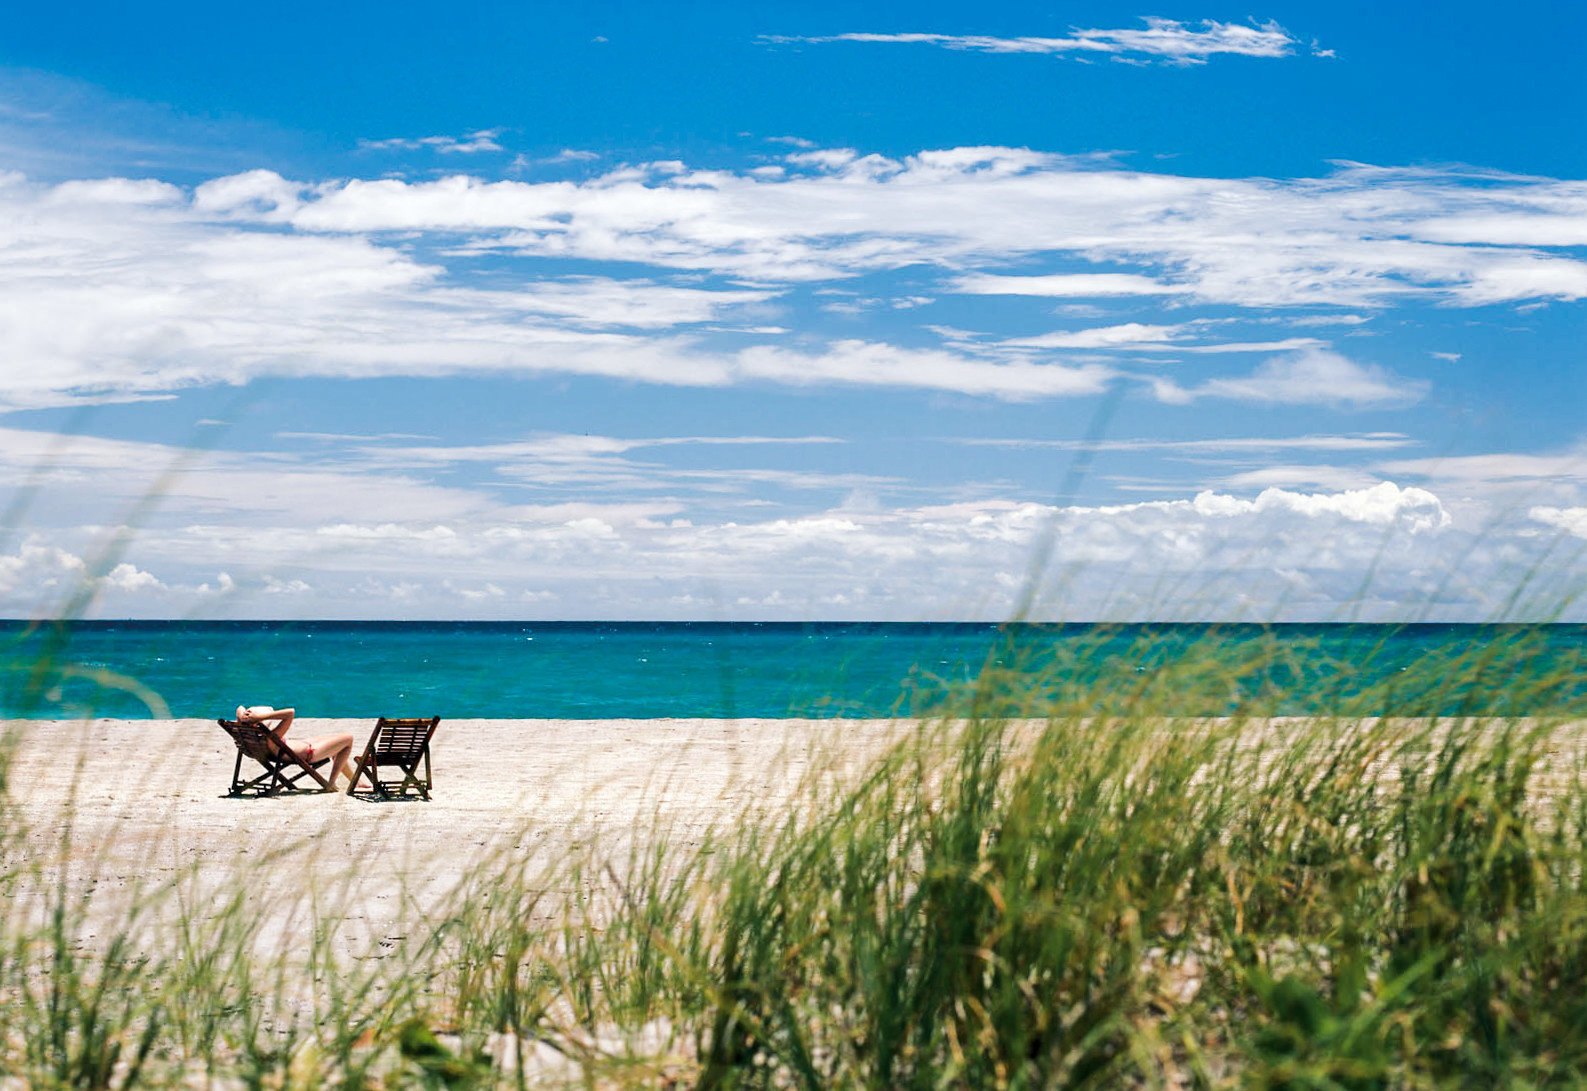 Rain Beach Emerald Coast Blue Sea Australia Ocean Summer: The Best Beaches In Florida (and Where To Stay